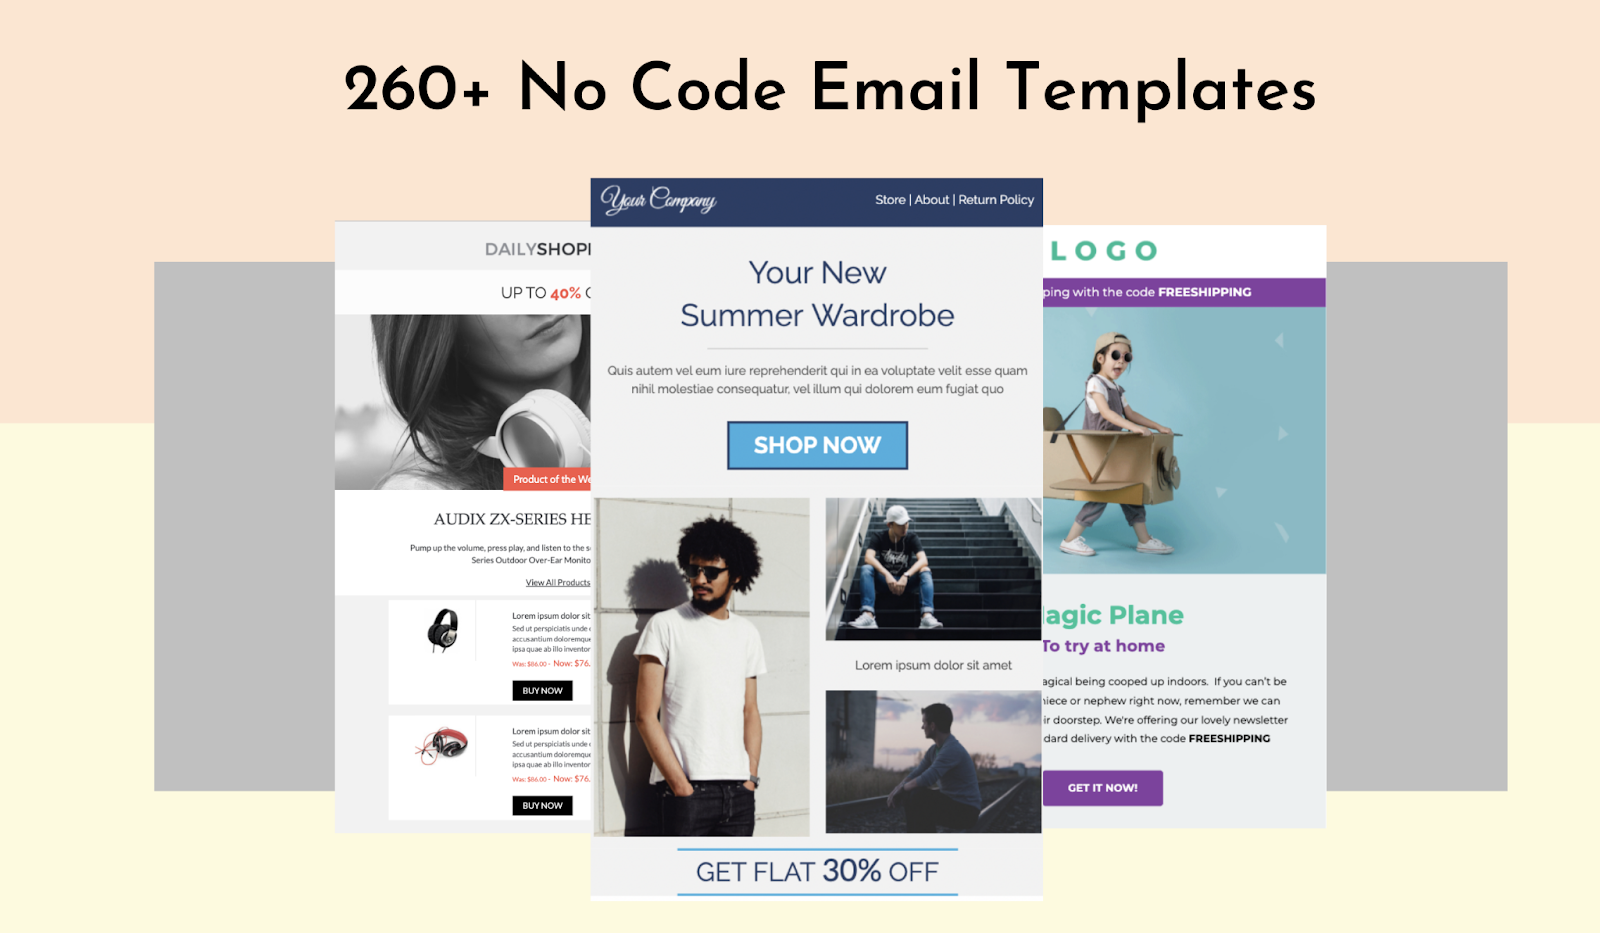 No code email templates library by Unlayer